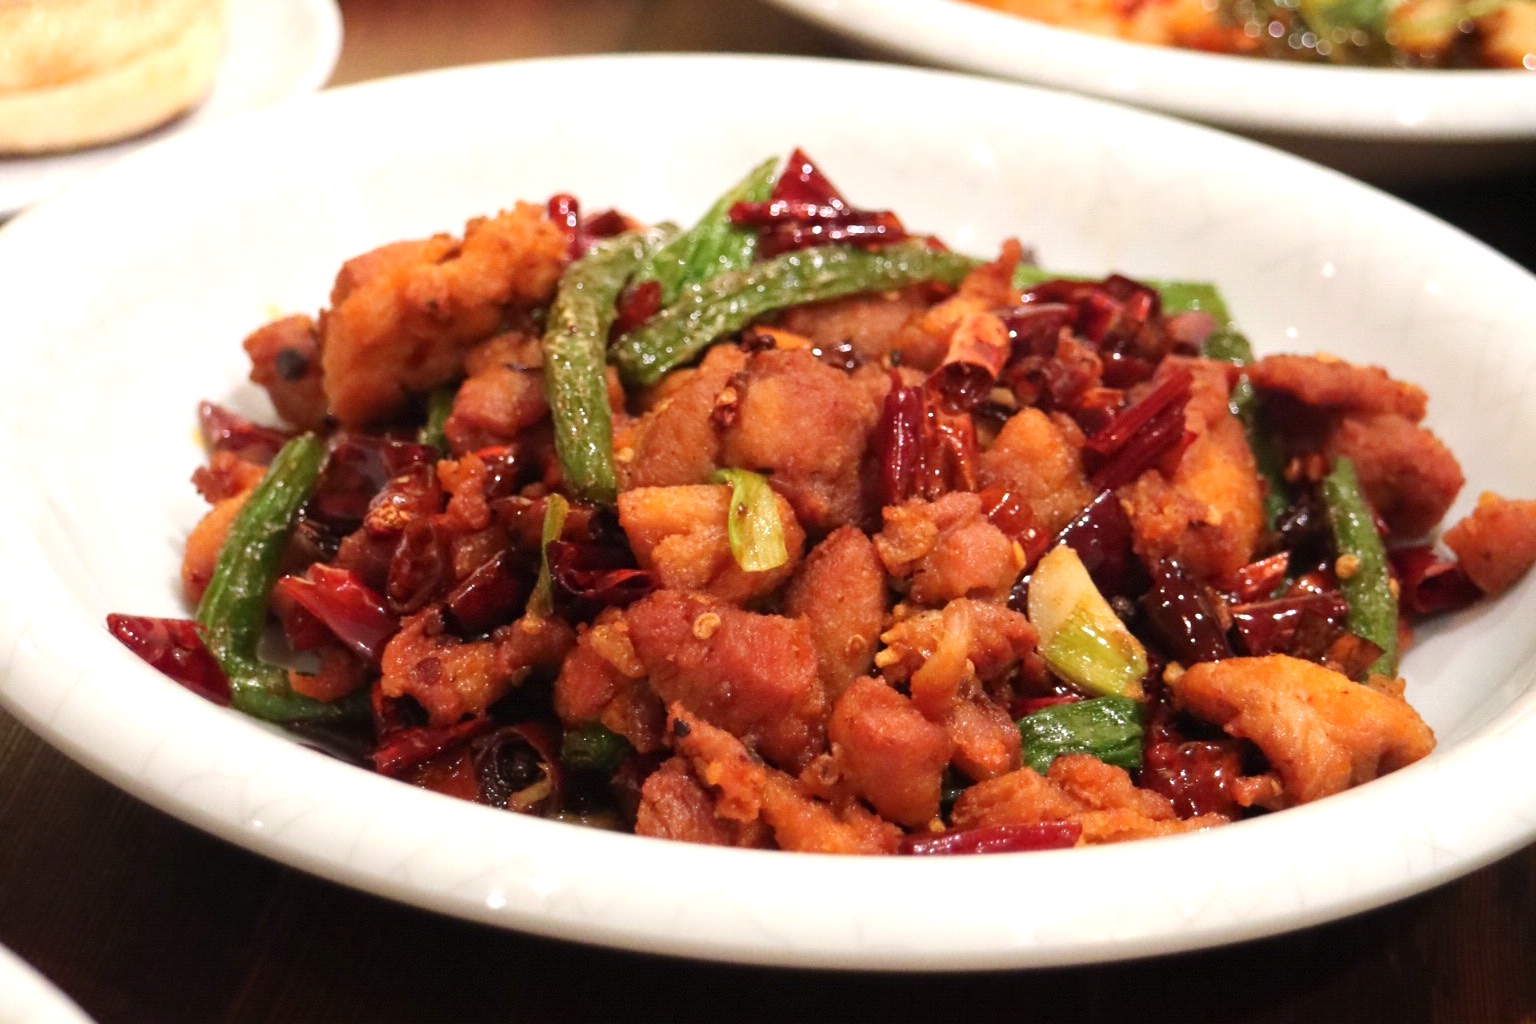 Sichuan Thousand Chili Chicken